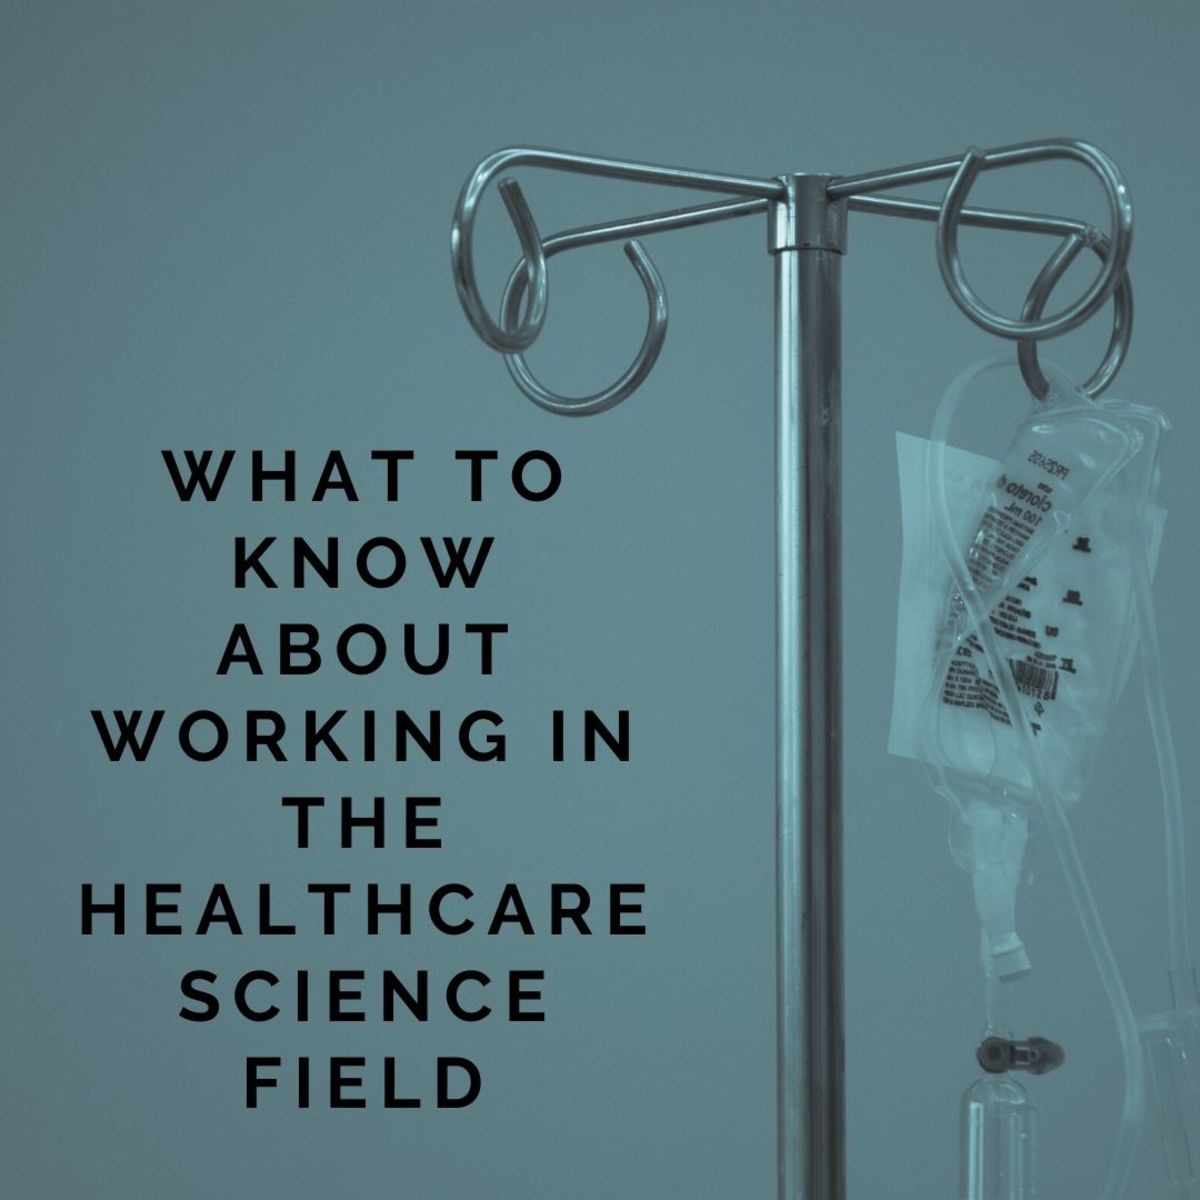 Careers in Healthcare Science: 5 Things You Should Know